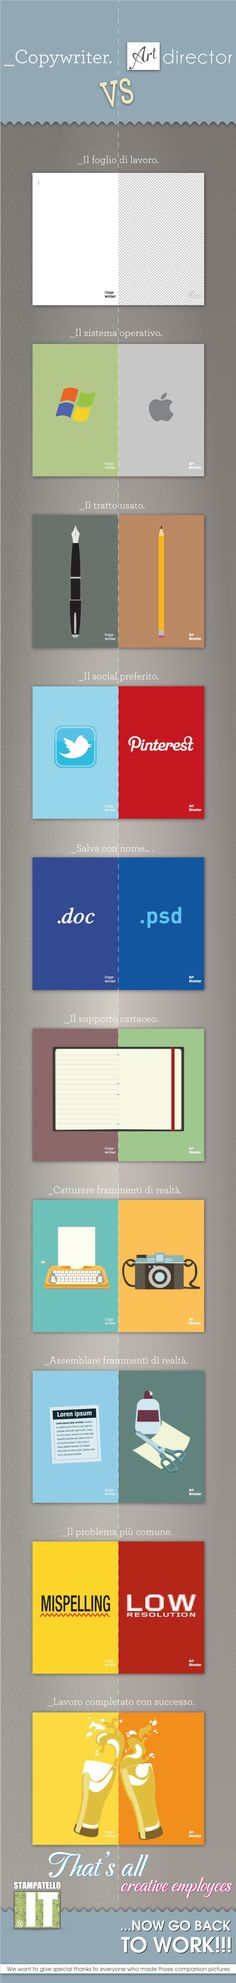 Copywriter VS Art Director - #infographic